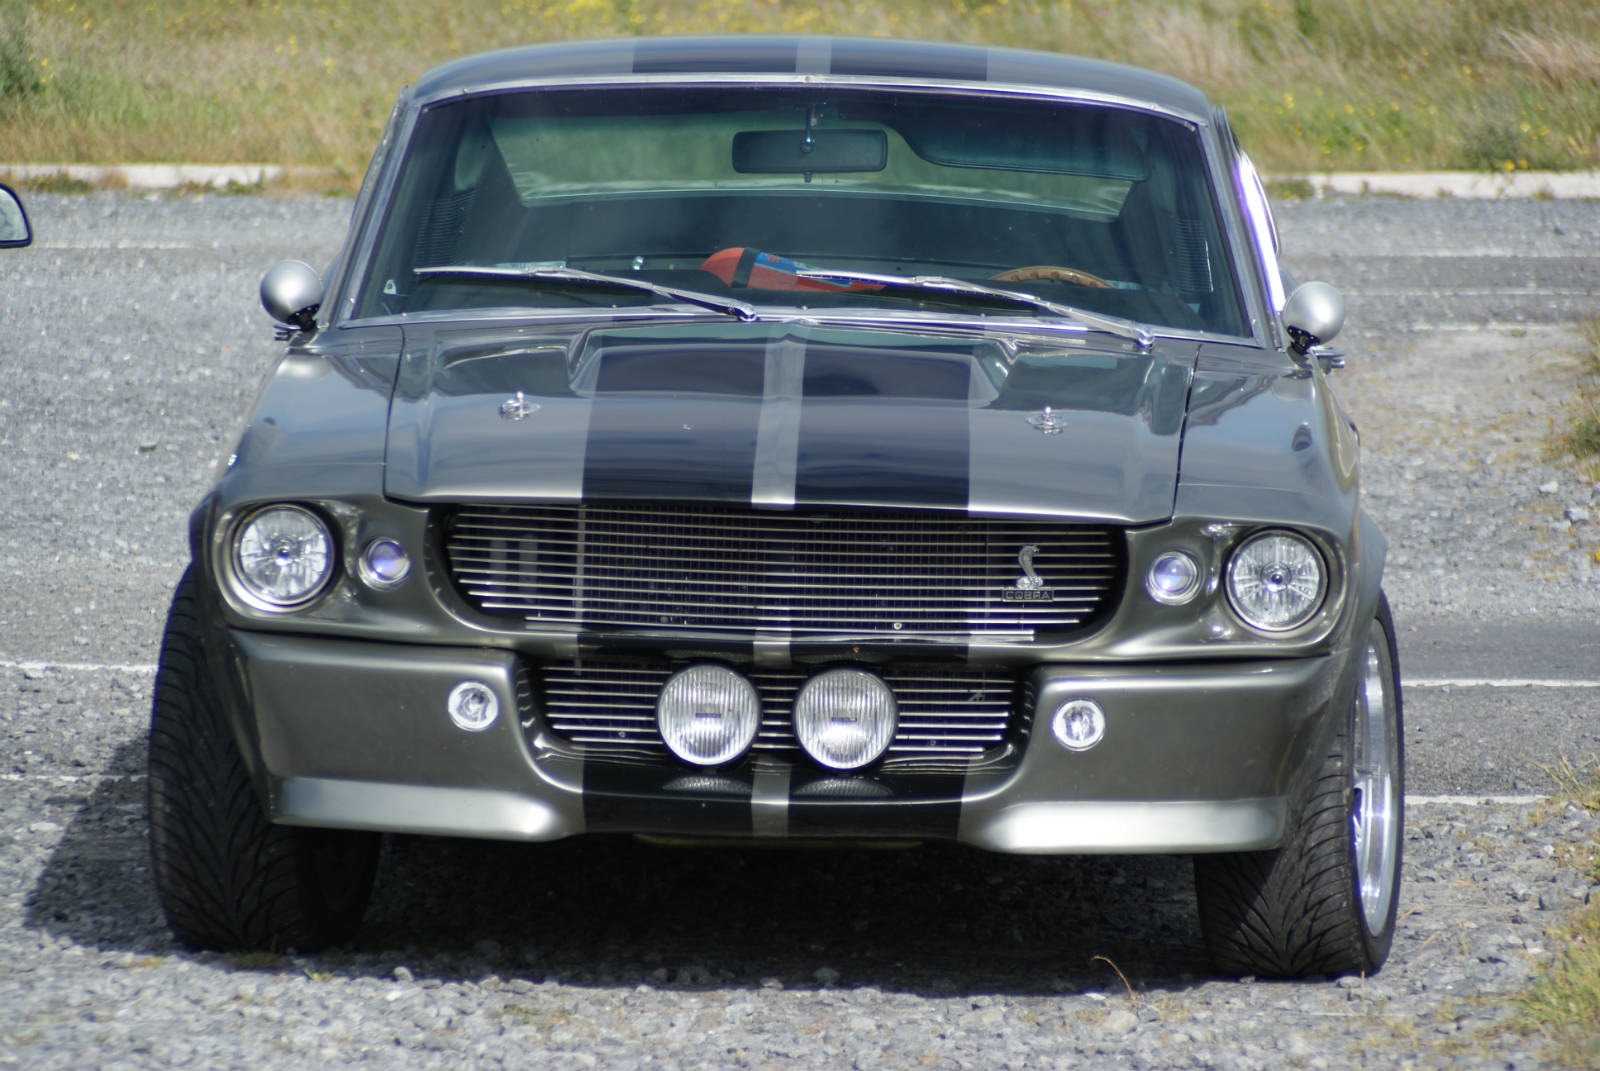 - 1967 Shelby Mustang Eleanor Gt500 Car Review And Wallpaper 1967